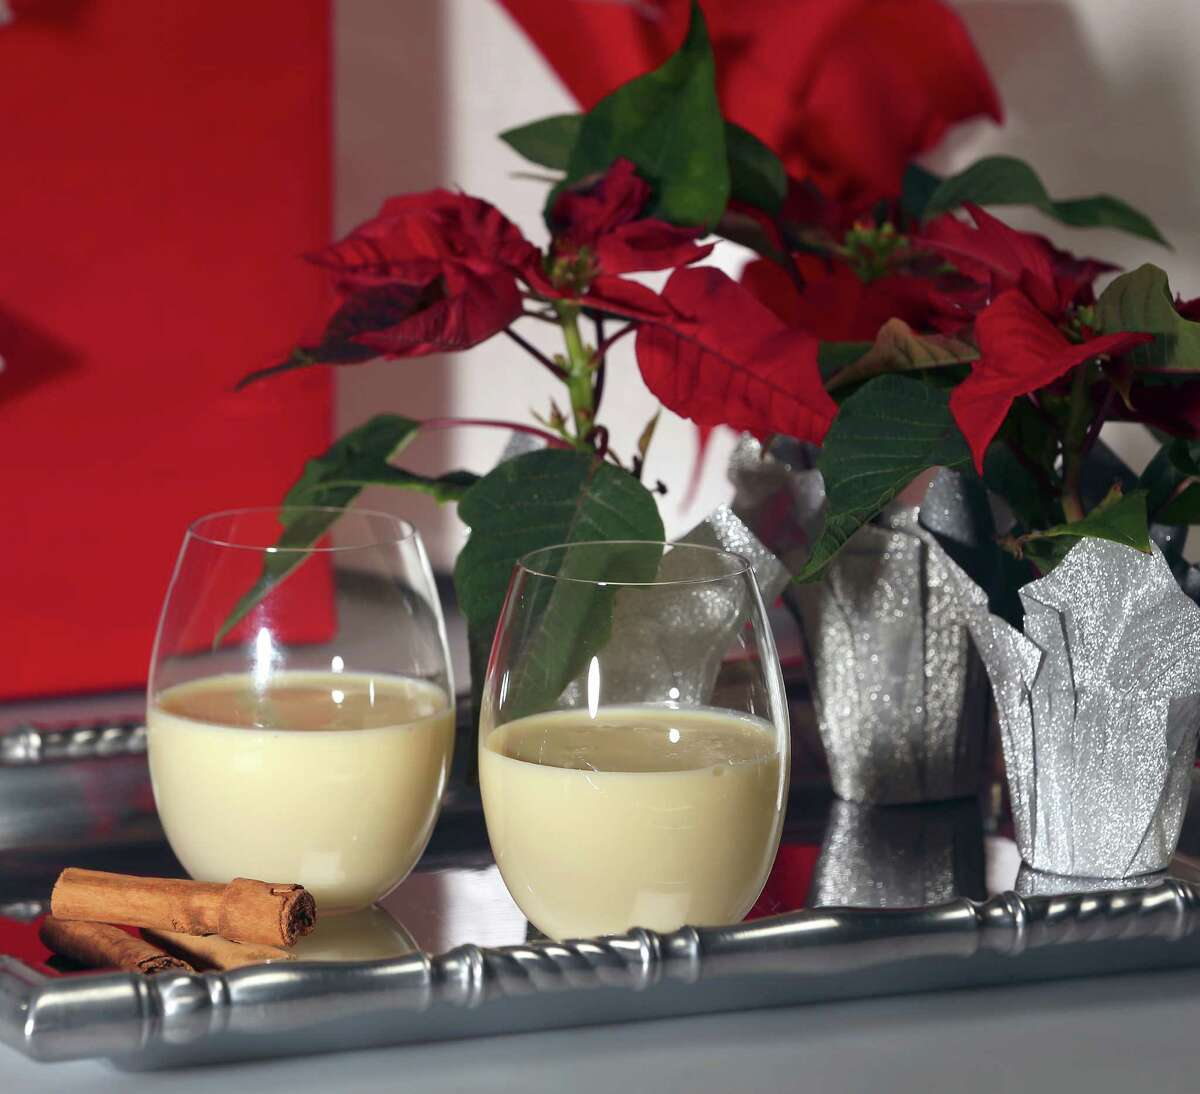 Rompope, traditional drink in Mexico, traces its heritage to colonial-era nuns in the state of Puebla. It's often enjoyed throughout the year, especially around Christmas time.